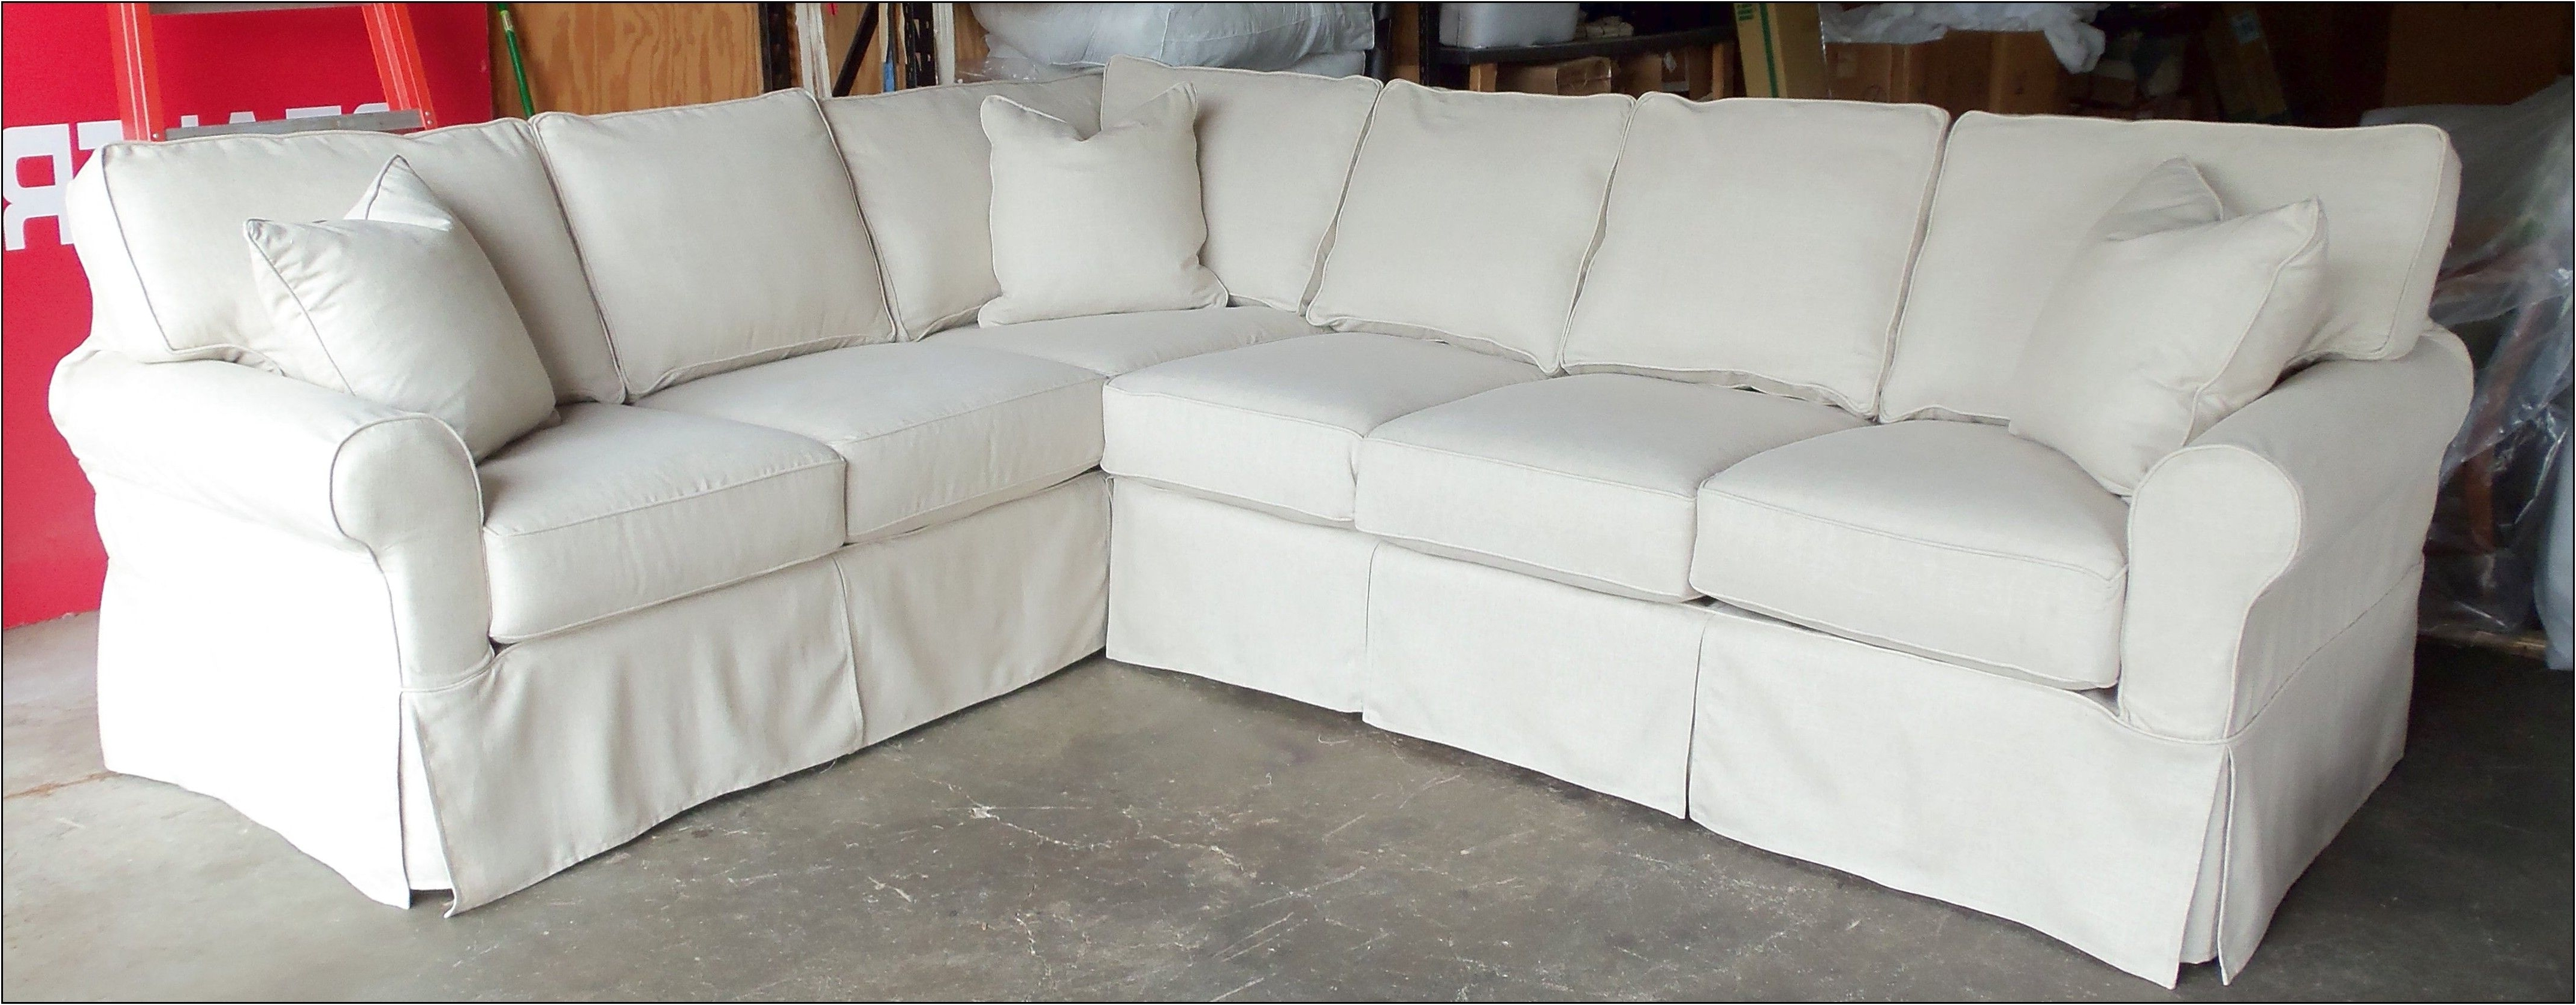 Cool Sectional Couch Cover , Best Sectional Couch Cover 72 For In Well Known Sectional Sofas With Covers (View 2 of 15)